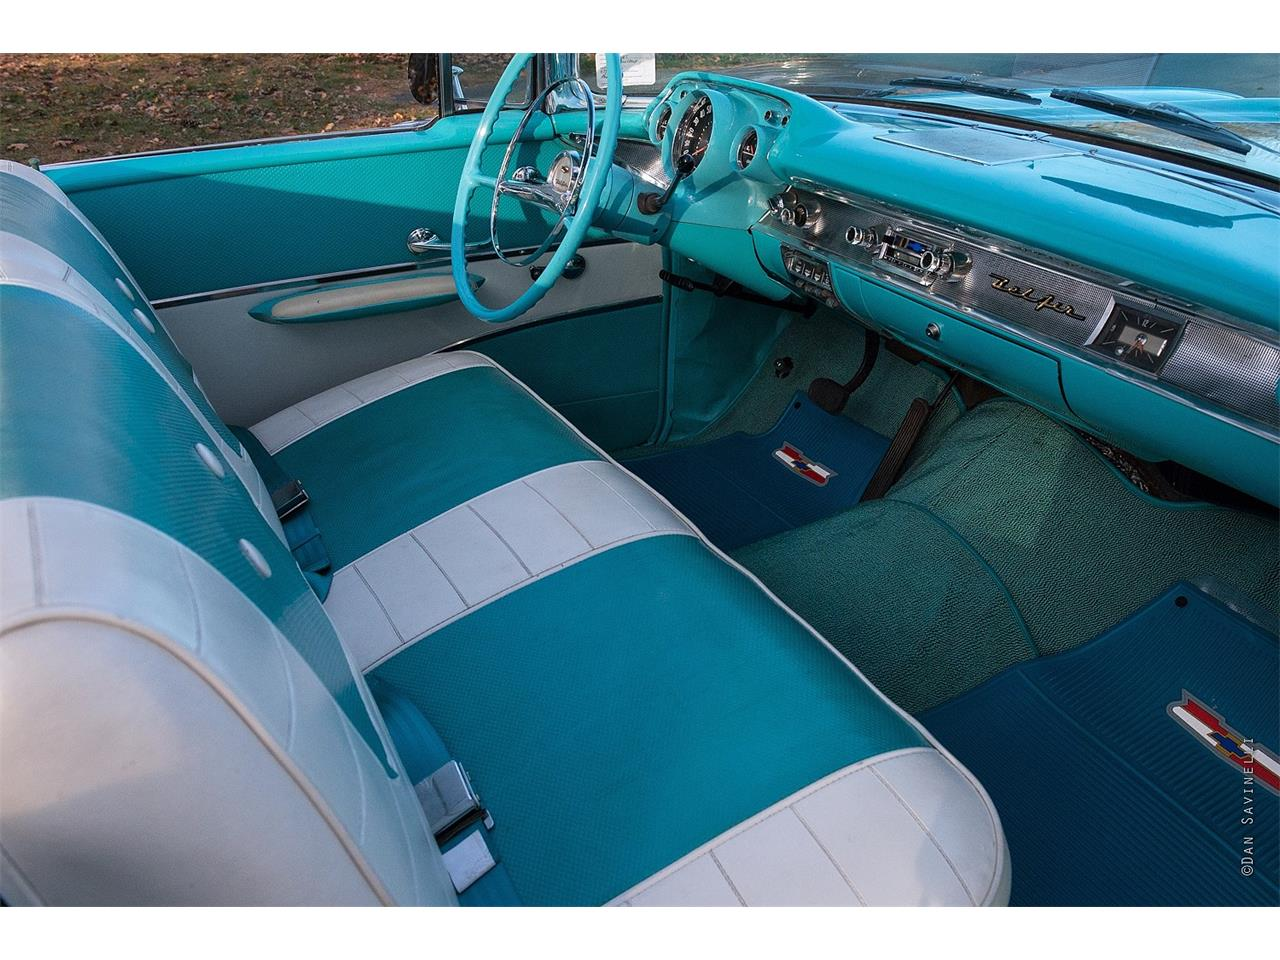 Large Picture of '57 Chevrolet Bel Air - $75,000.00 Offered by Black Horse Garage - KDHZ